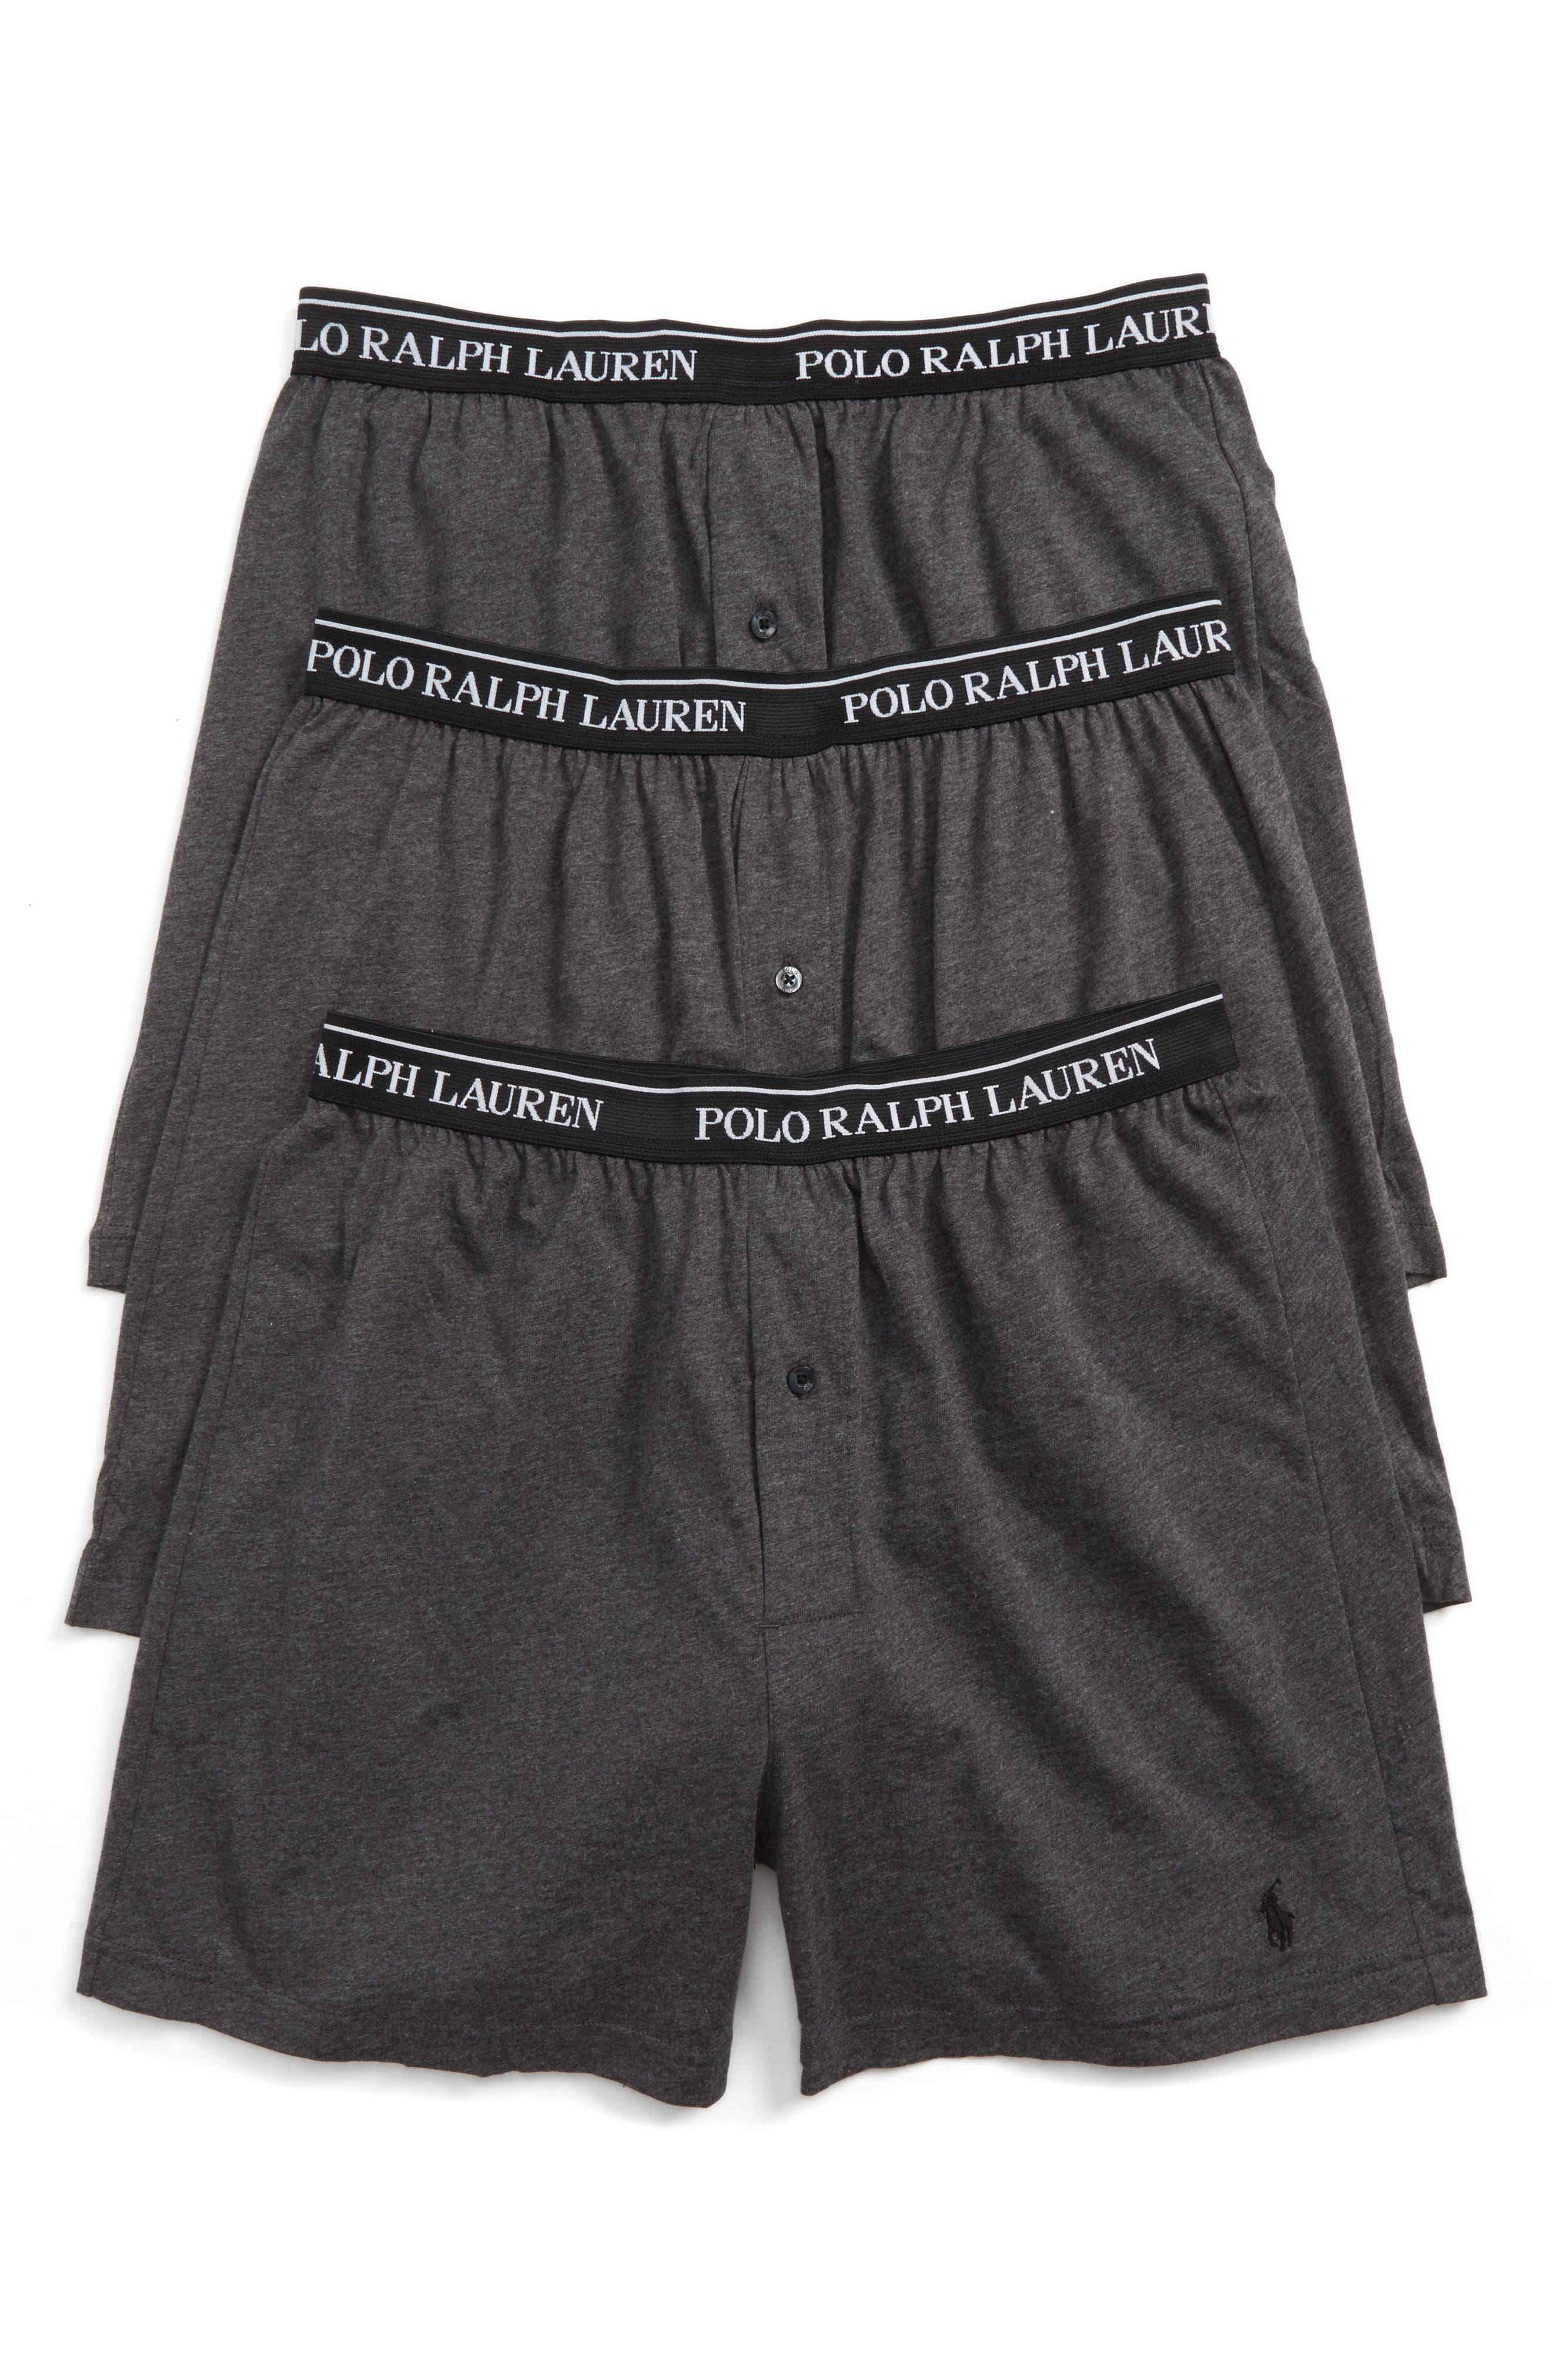 Polo Ralph Lauren 3-Pack Knit Boxers